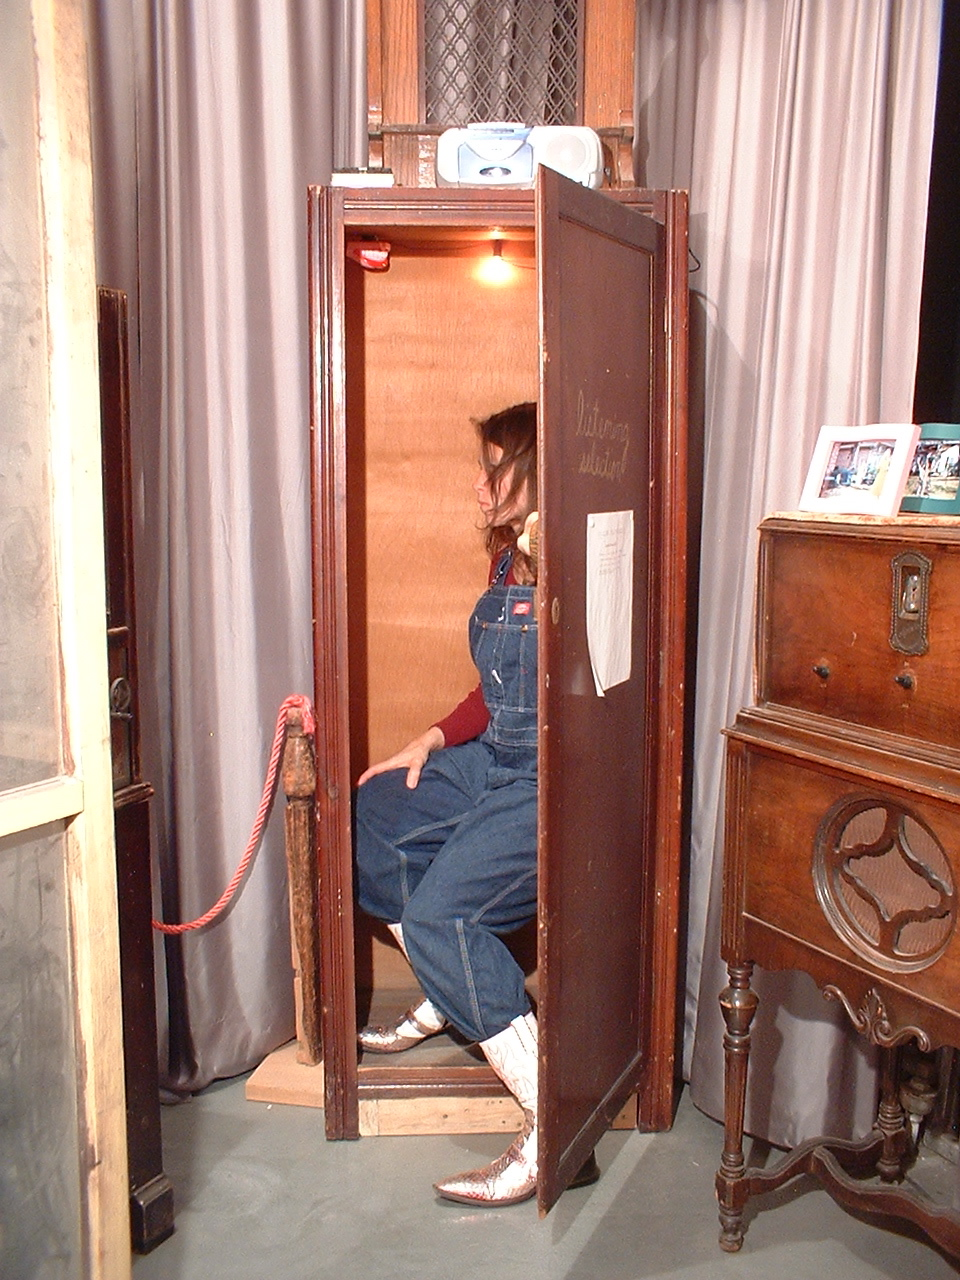 A small wardrobe now converted to a listening booth. 2000; wooden chamber with stereo device, light, toy, electrical components, and a selection of audio works by Paula Lalala.